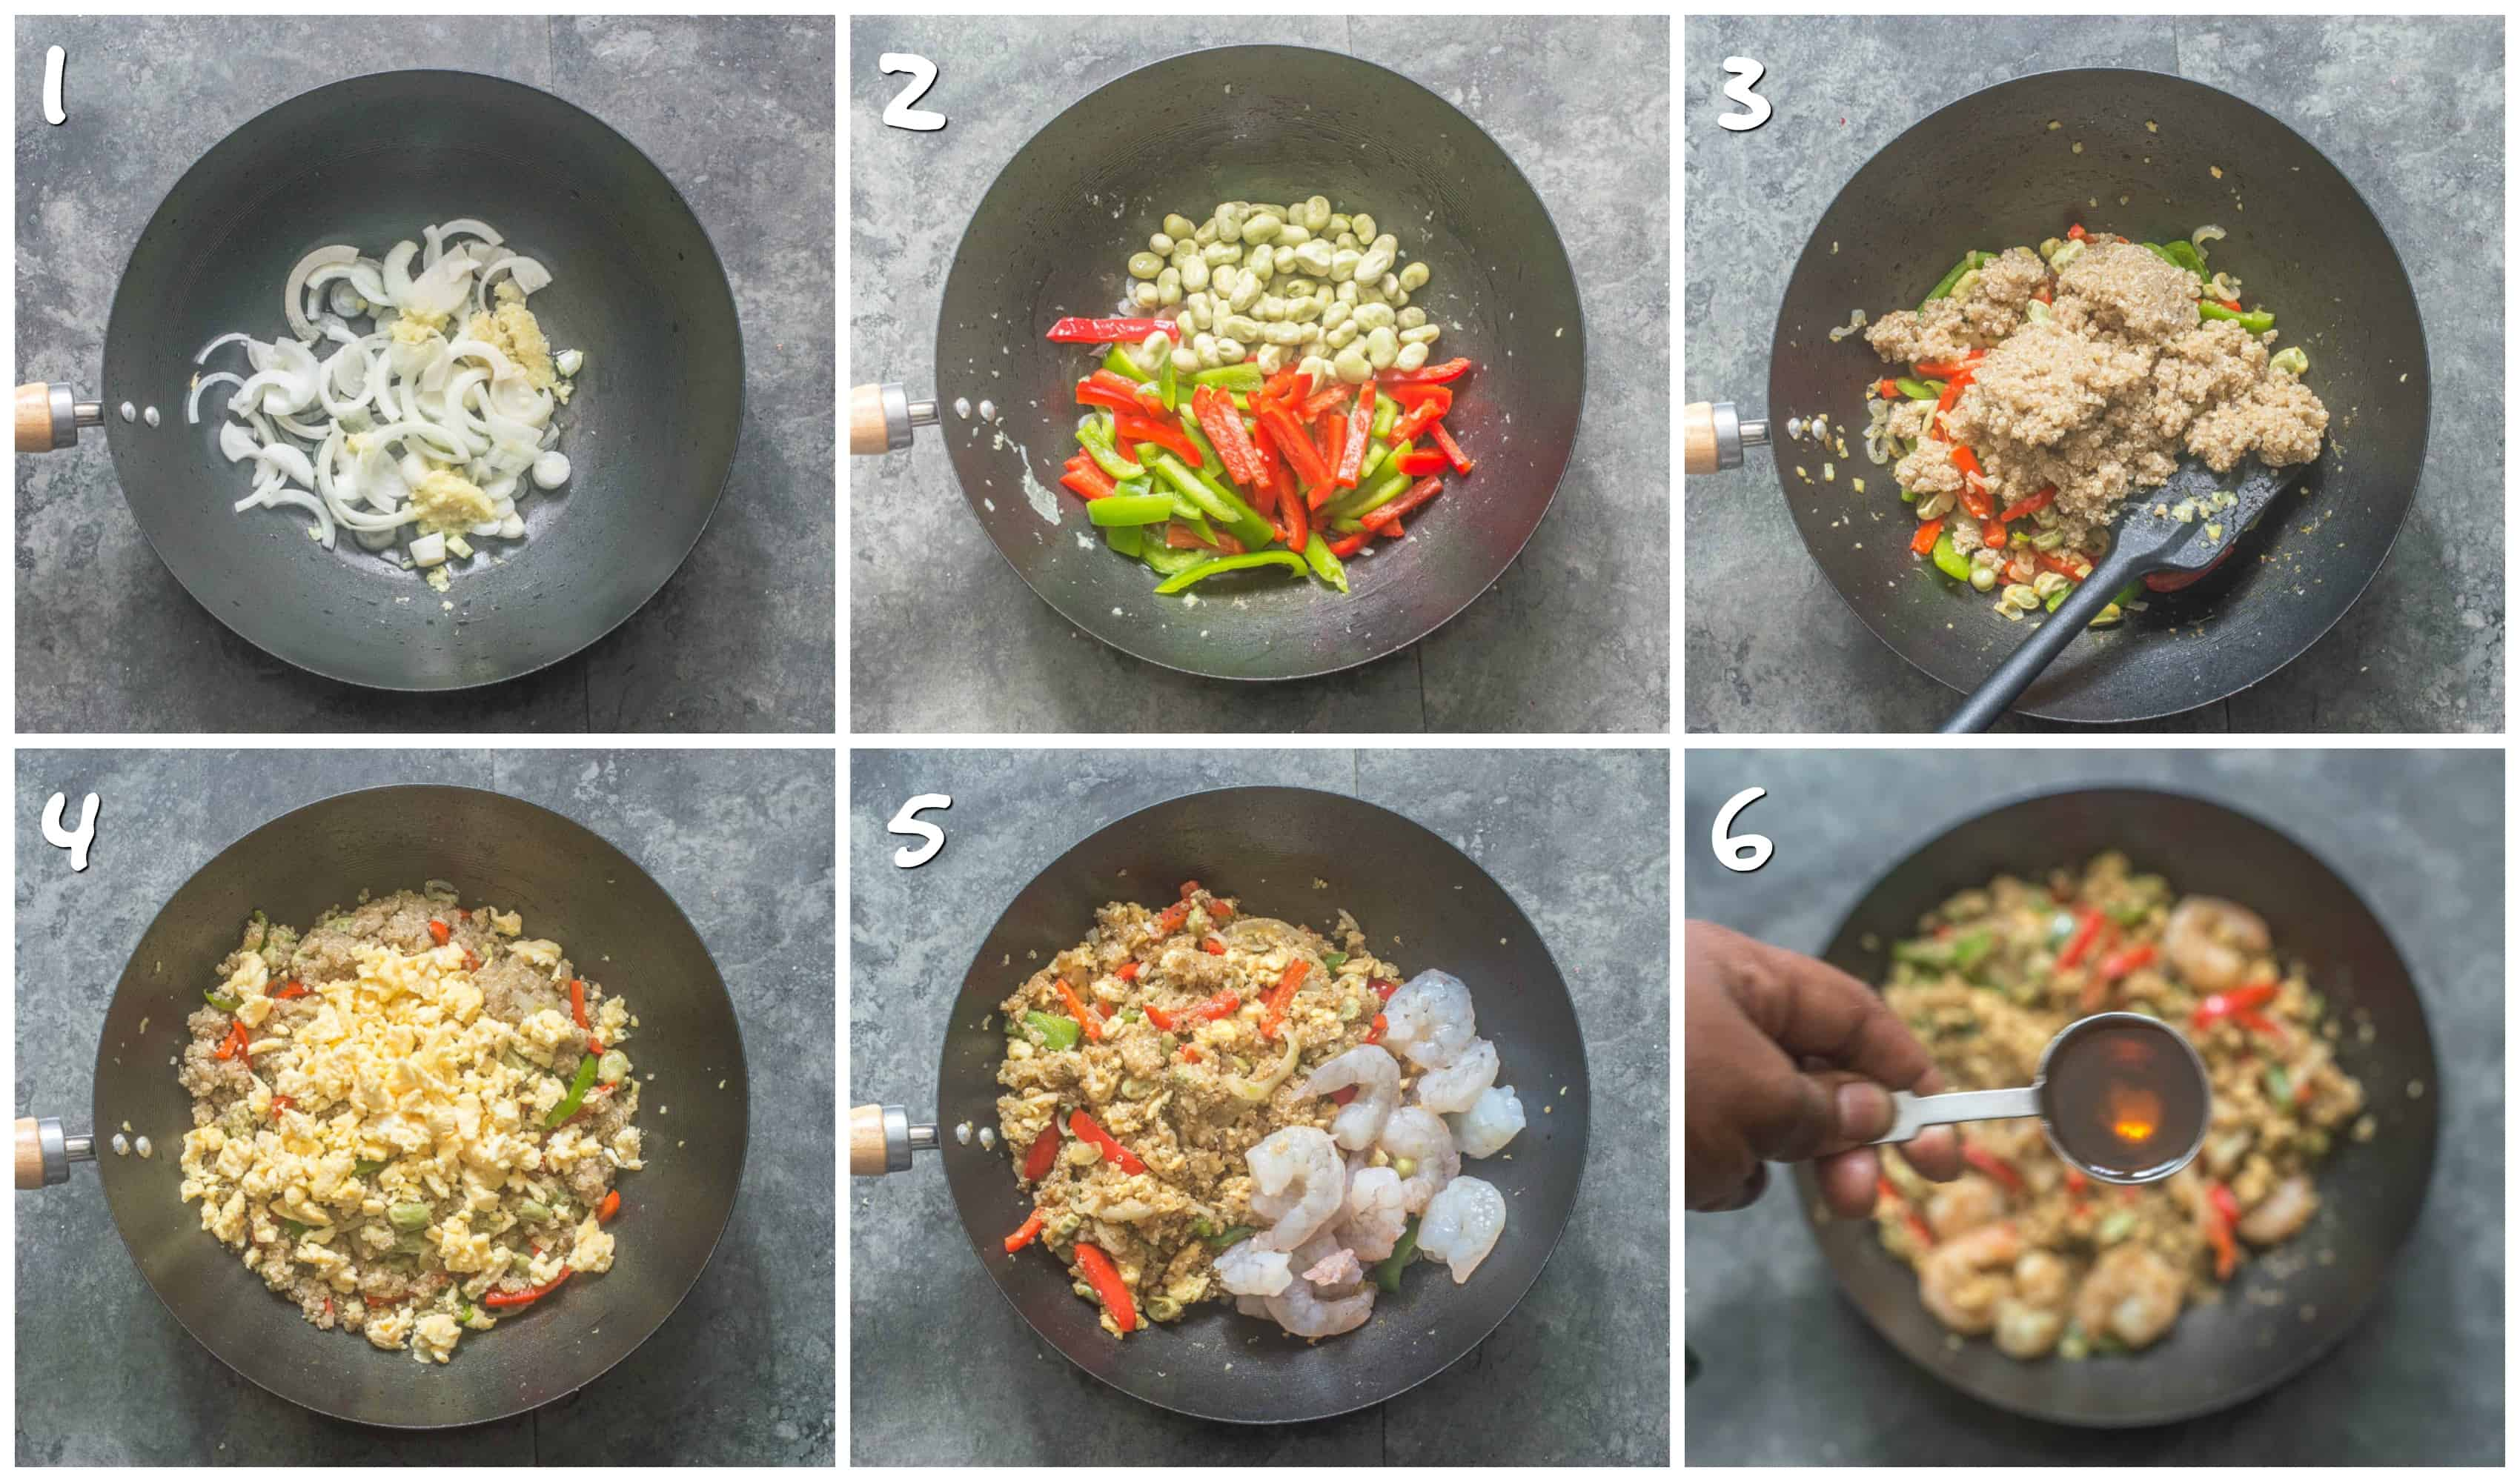 Steps for stir frying quinoa and shrimp with vegetables